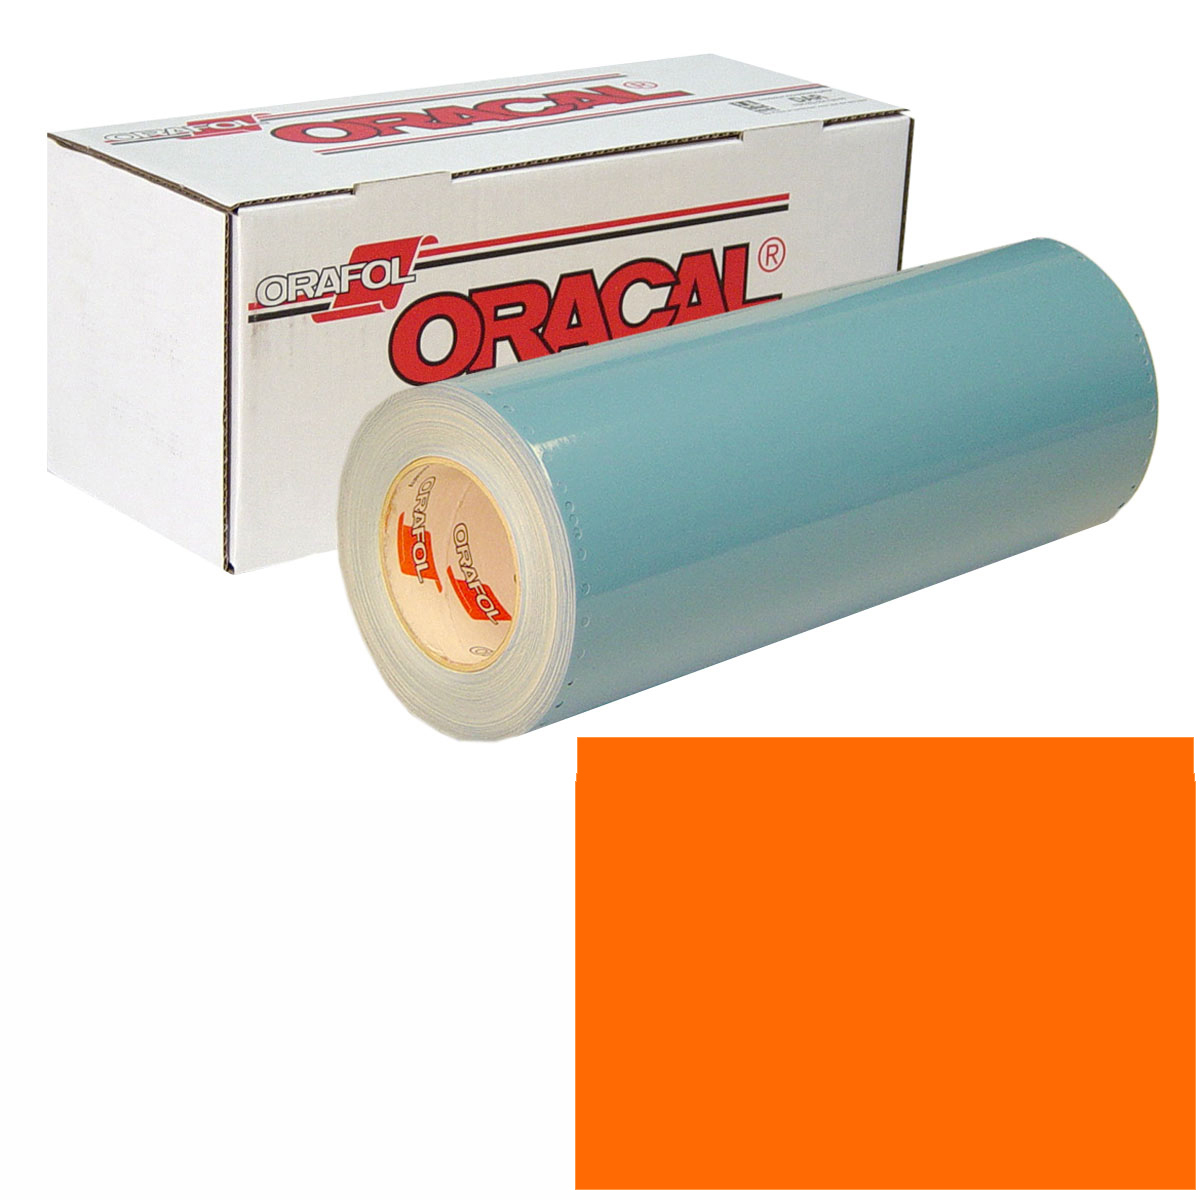 ORACAL 751 15in X 50yd 034 Orange